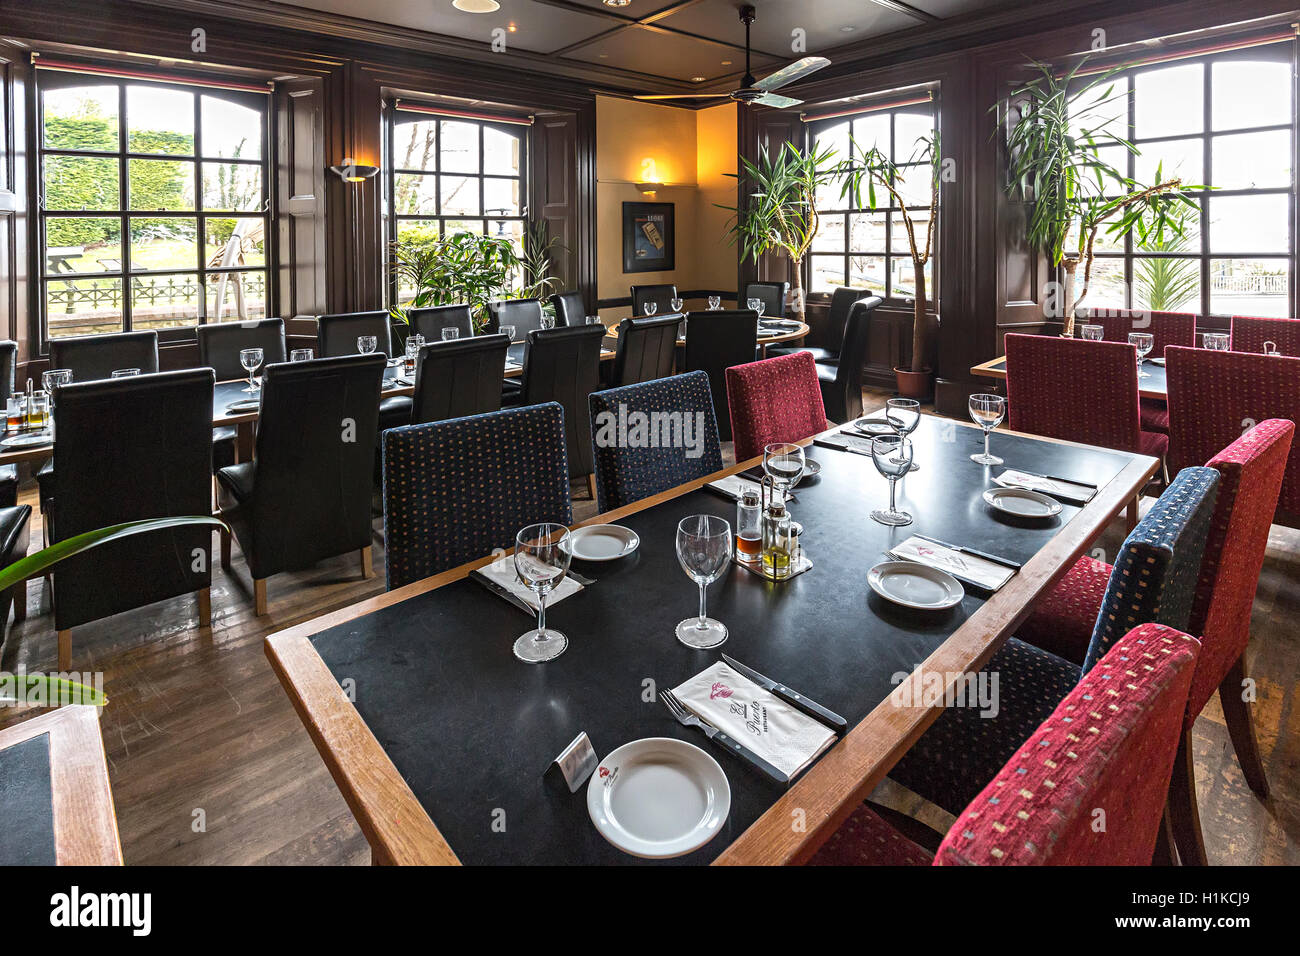 Restaurant tables laid ready for customers, Cardiff, Wales, UK - Stock Image